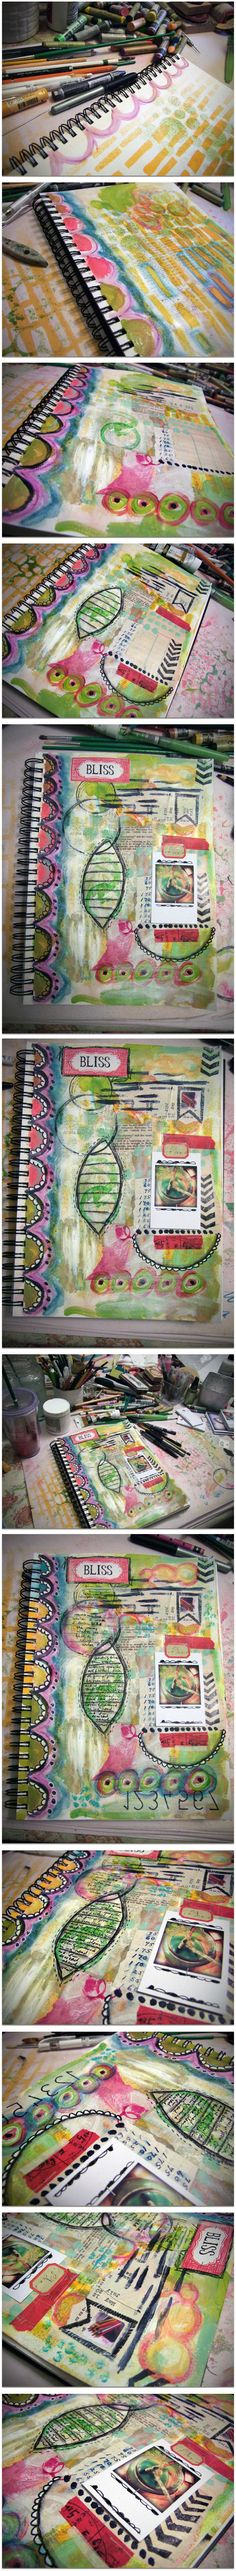 I took pictures as I worked so you can see the process. I used gesso, oil pastels, spray inks, stencils, acrylic paints, washi tape, masking tape, pencils and pens, scrap papers, rubber stamps, staples and a cute little Instagram photo.